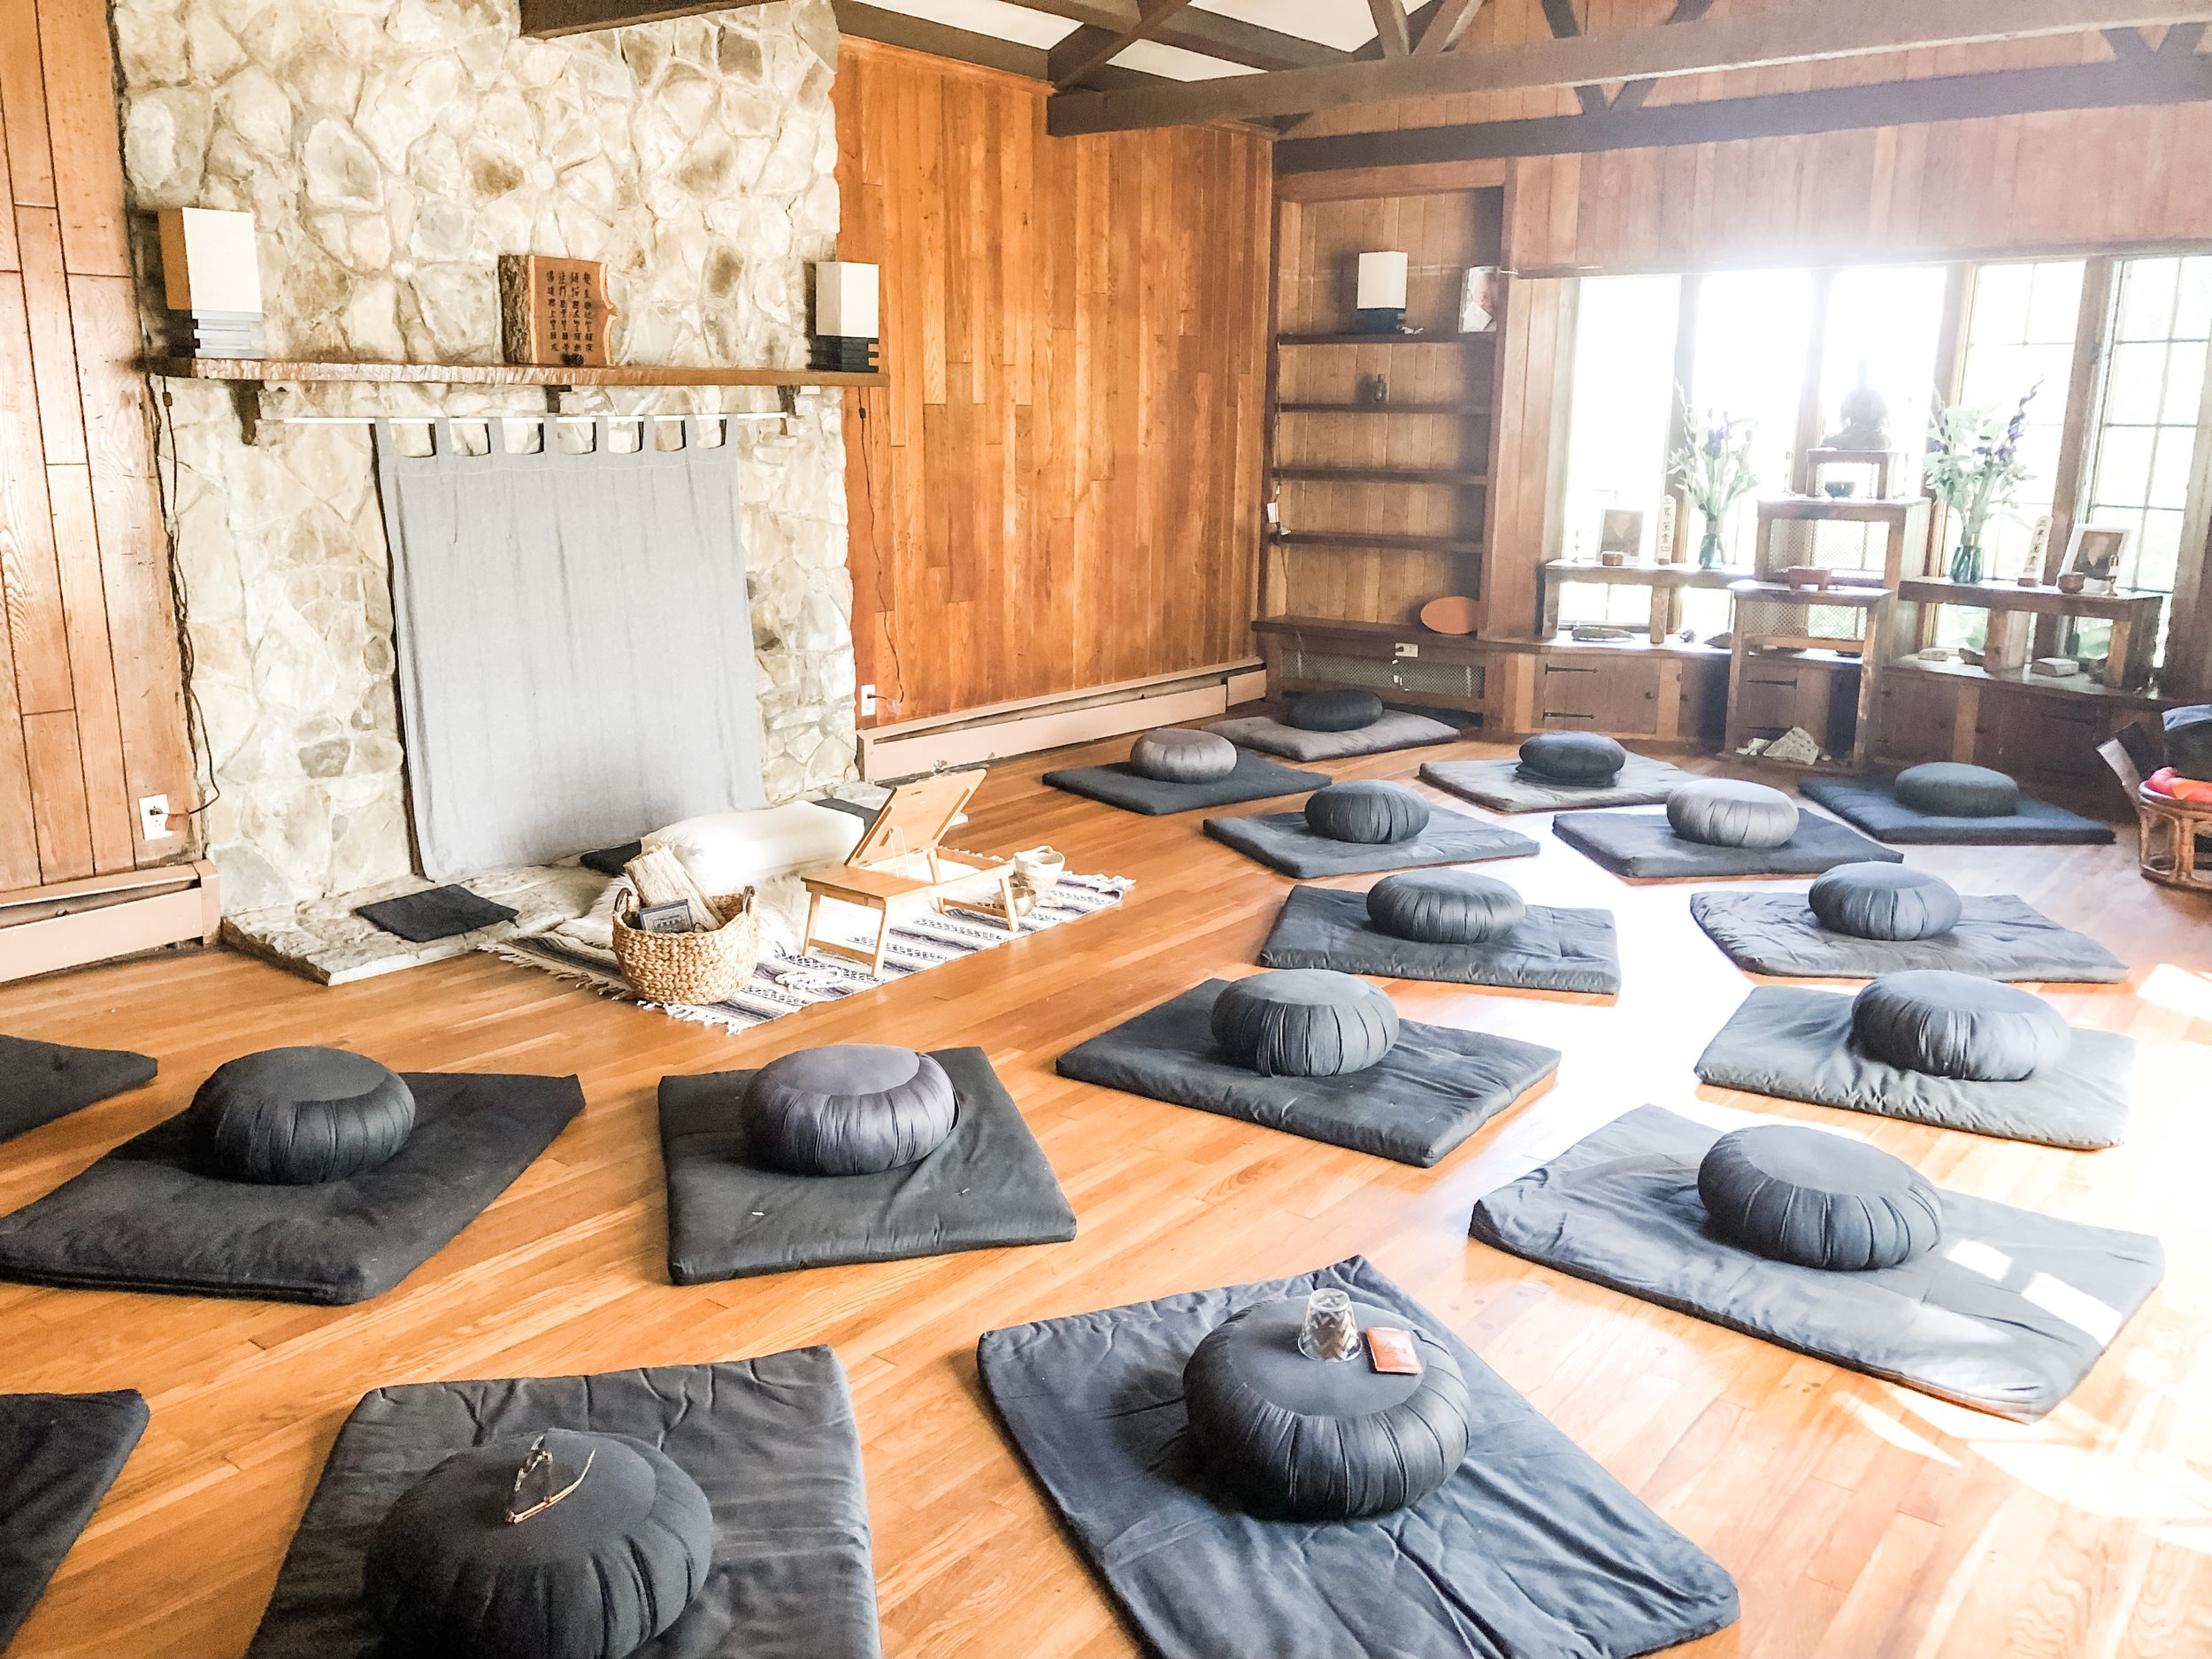 Arise-Retreat-Zendo-Kim-Chestney.jpg